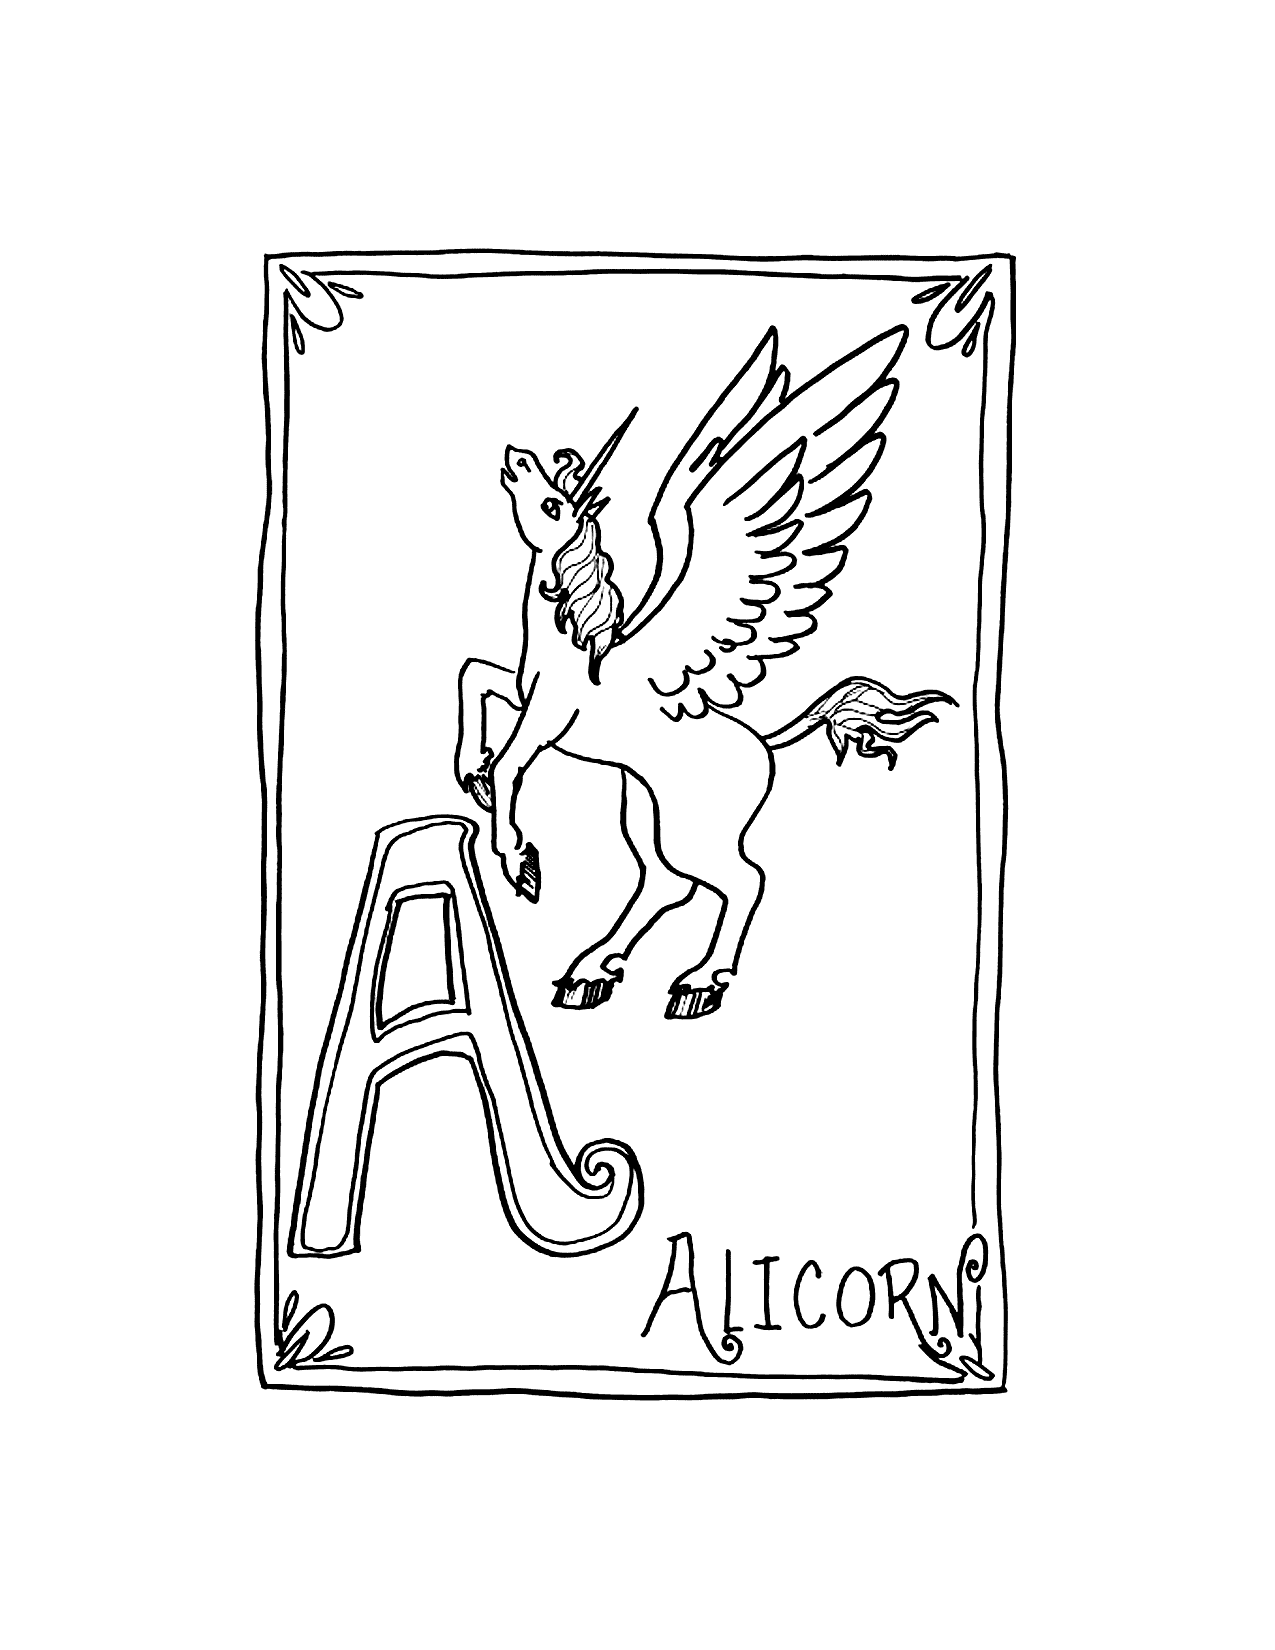 Alicorn Coloring Pages